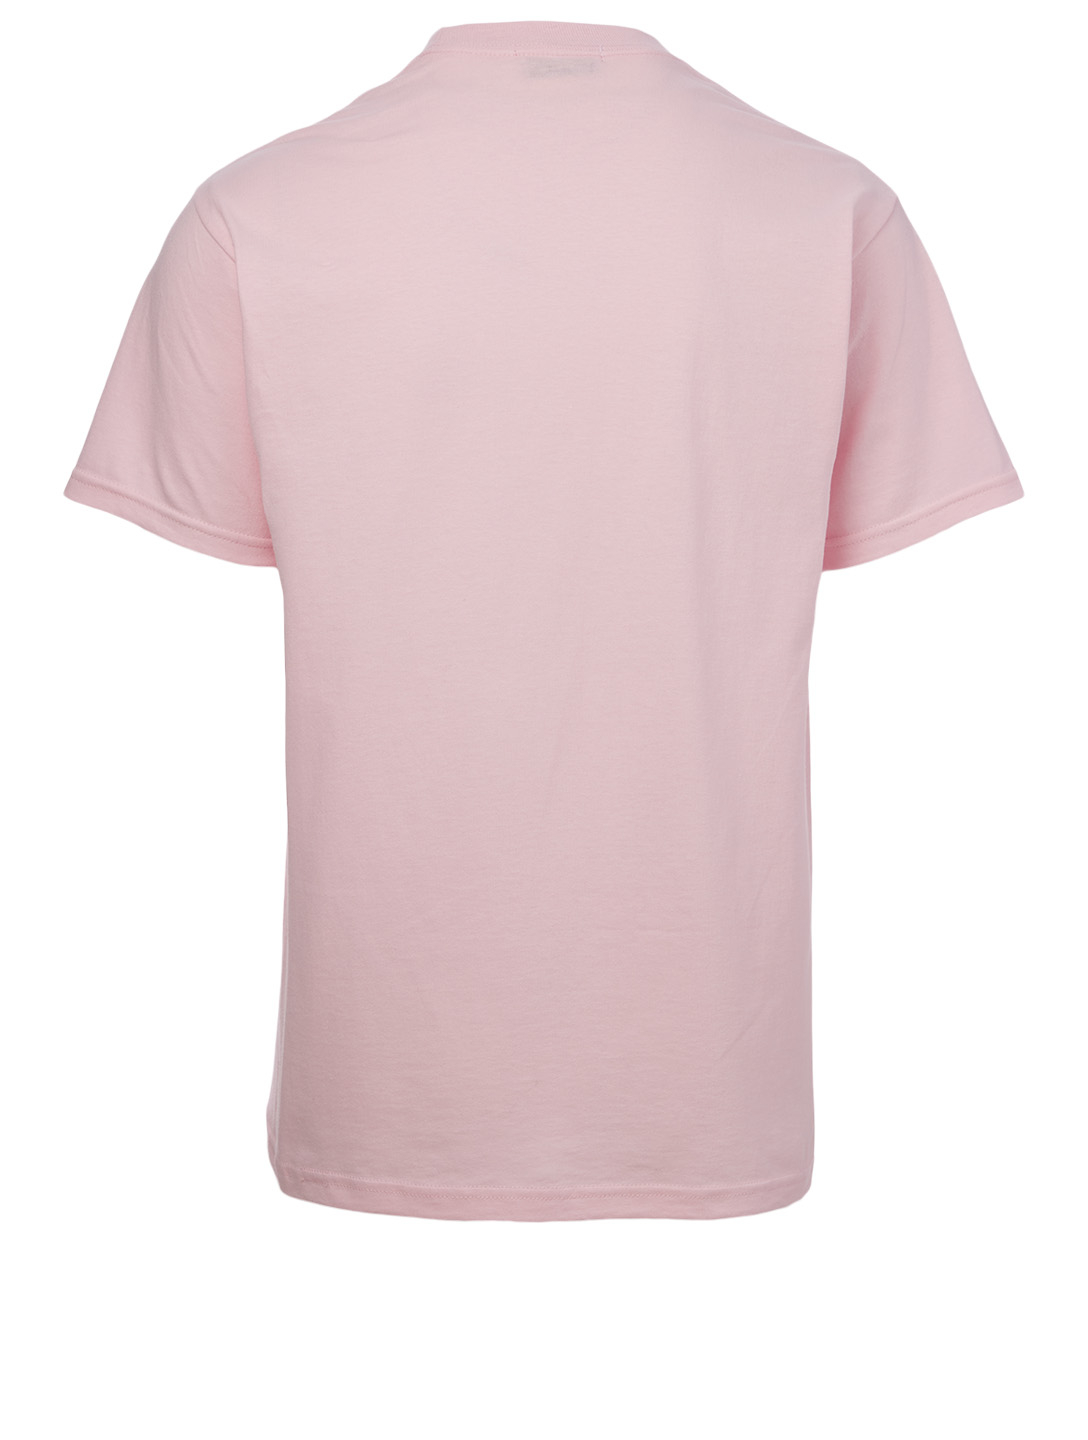 SAINTWOODS Tee-shirt On Behalf Of SW x Holt en coton Hommes Rose